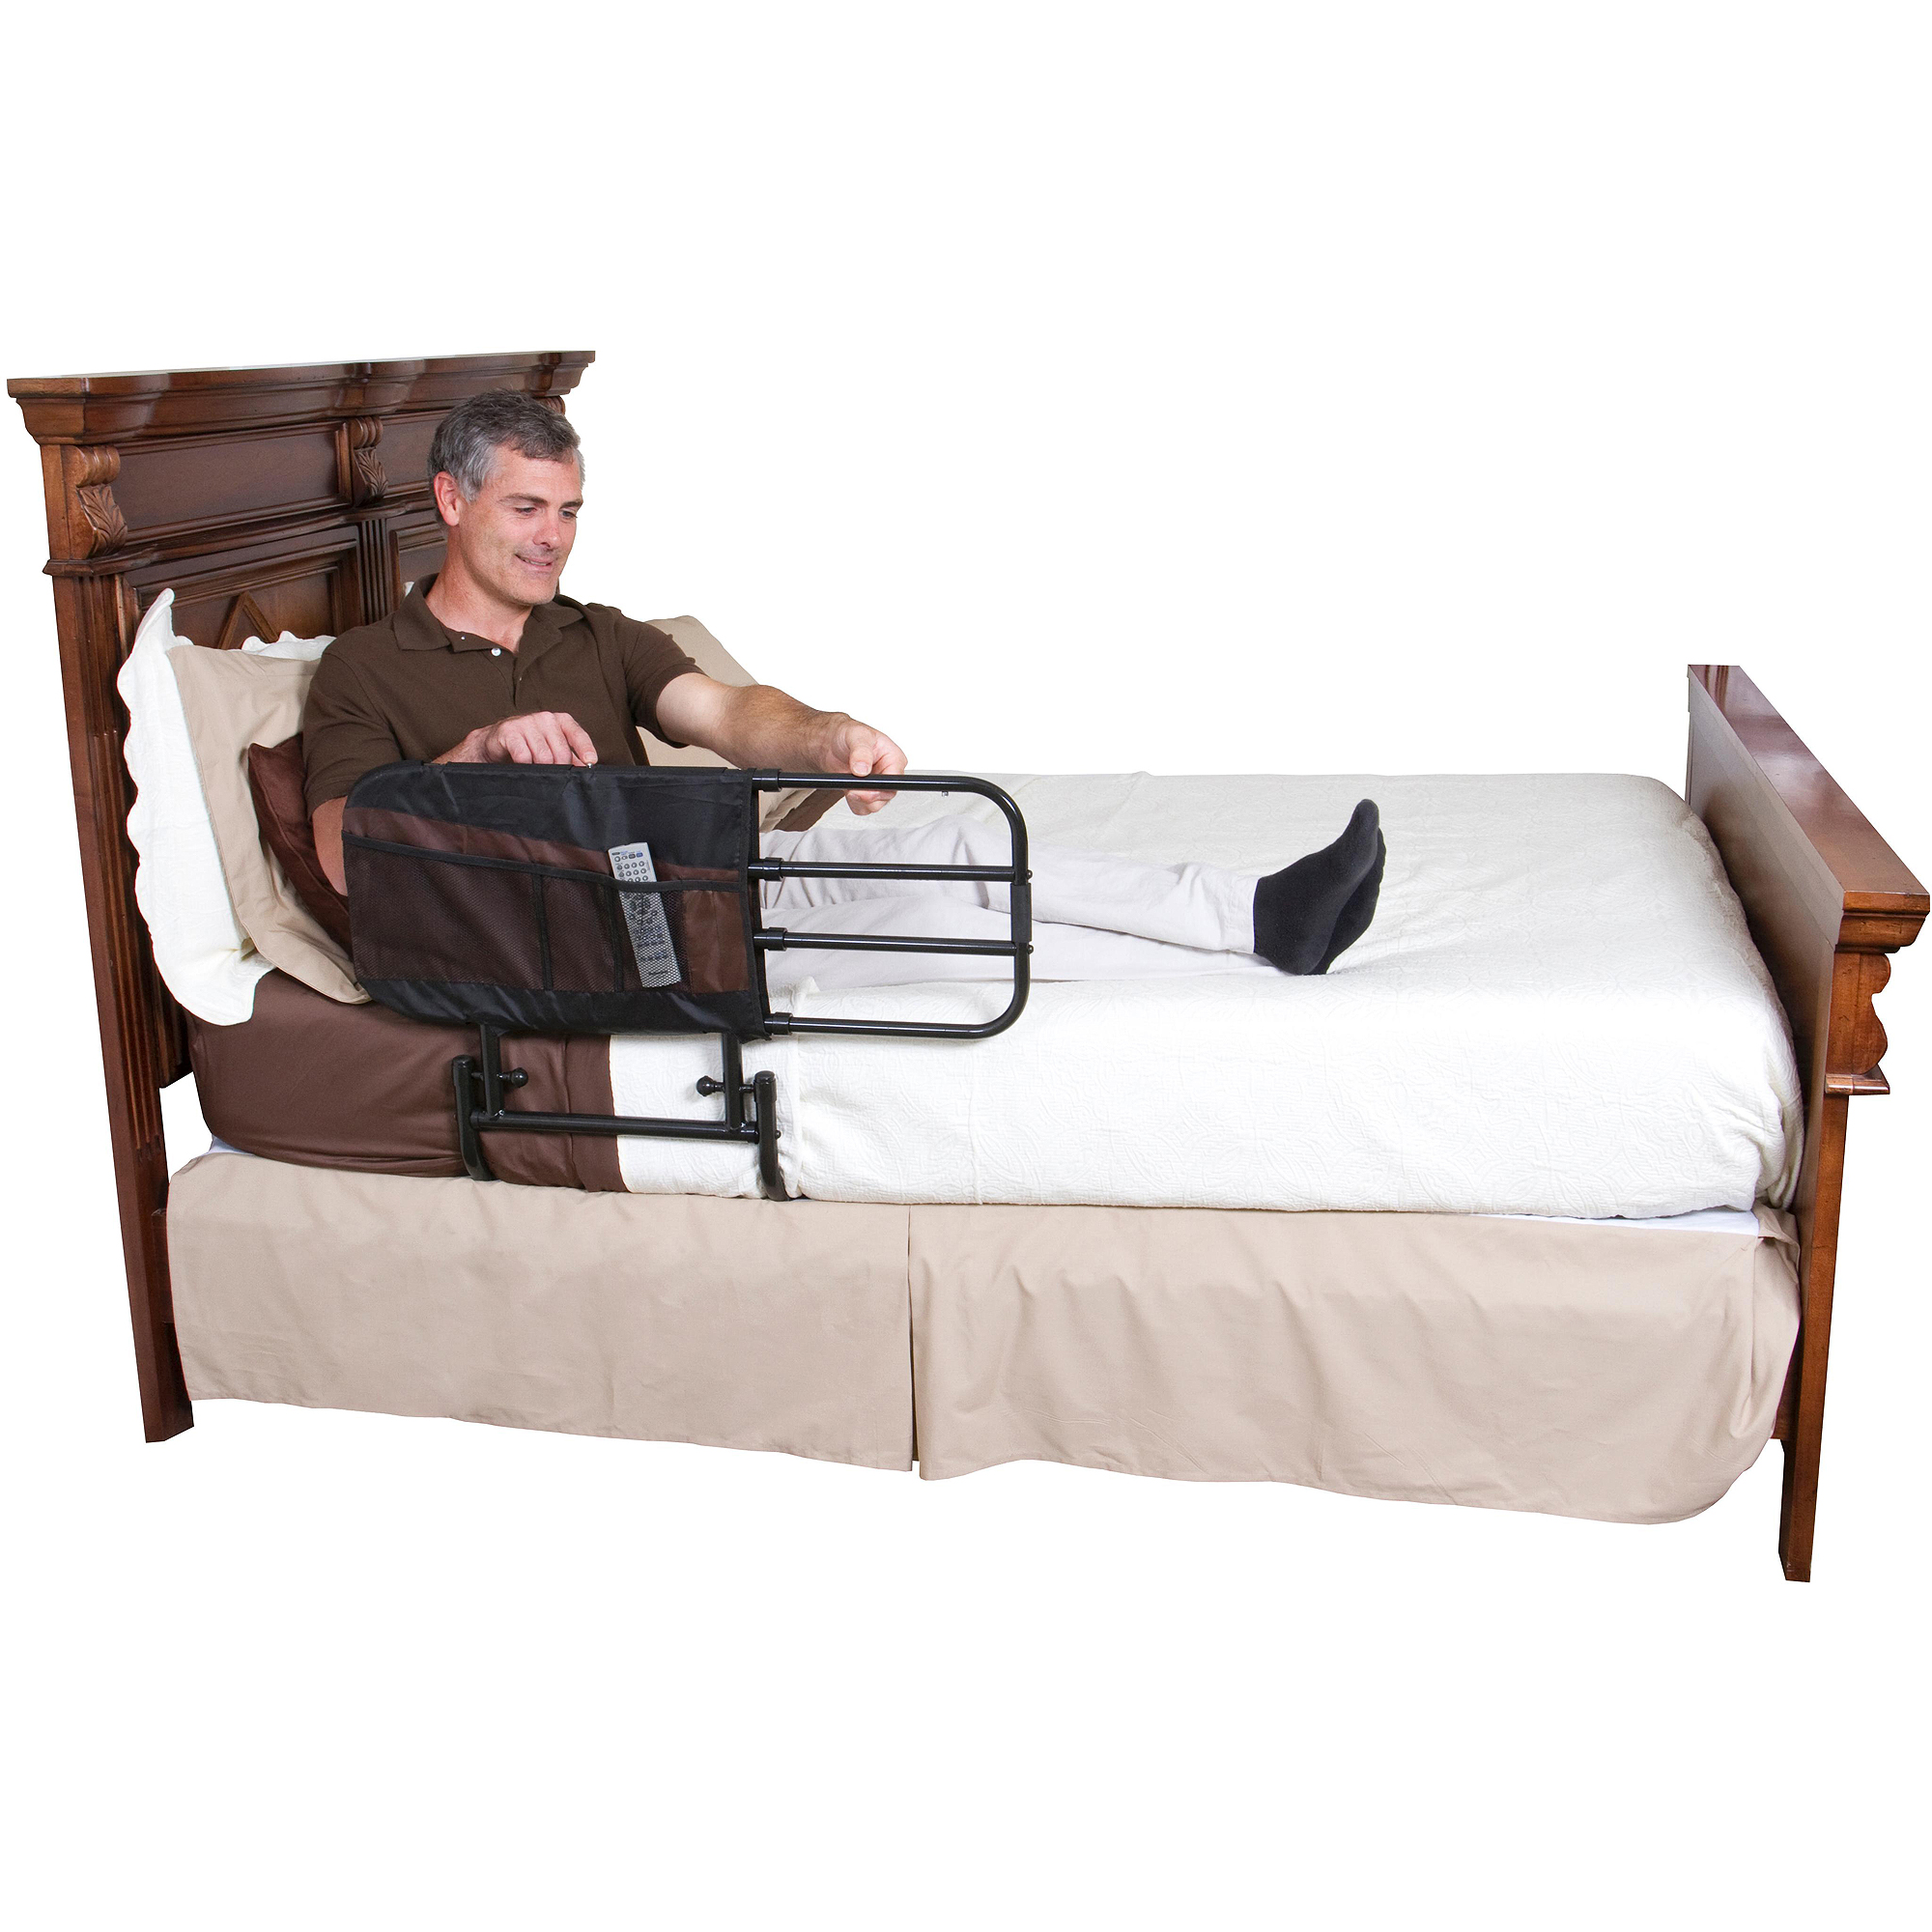 Stander EZ Adjust Home Bed Rail -Length Adjustable and Folding Rail, Black